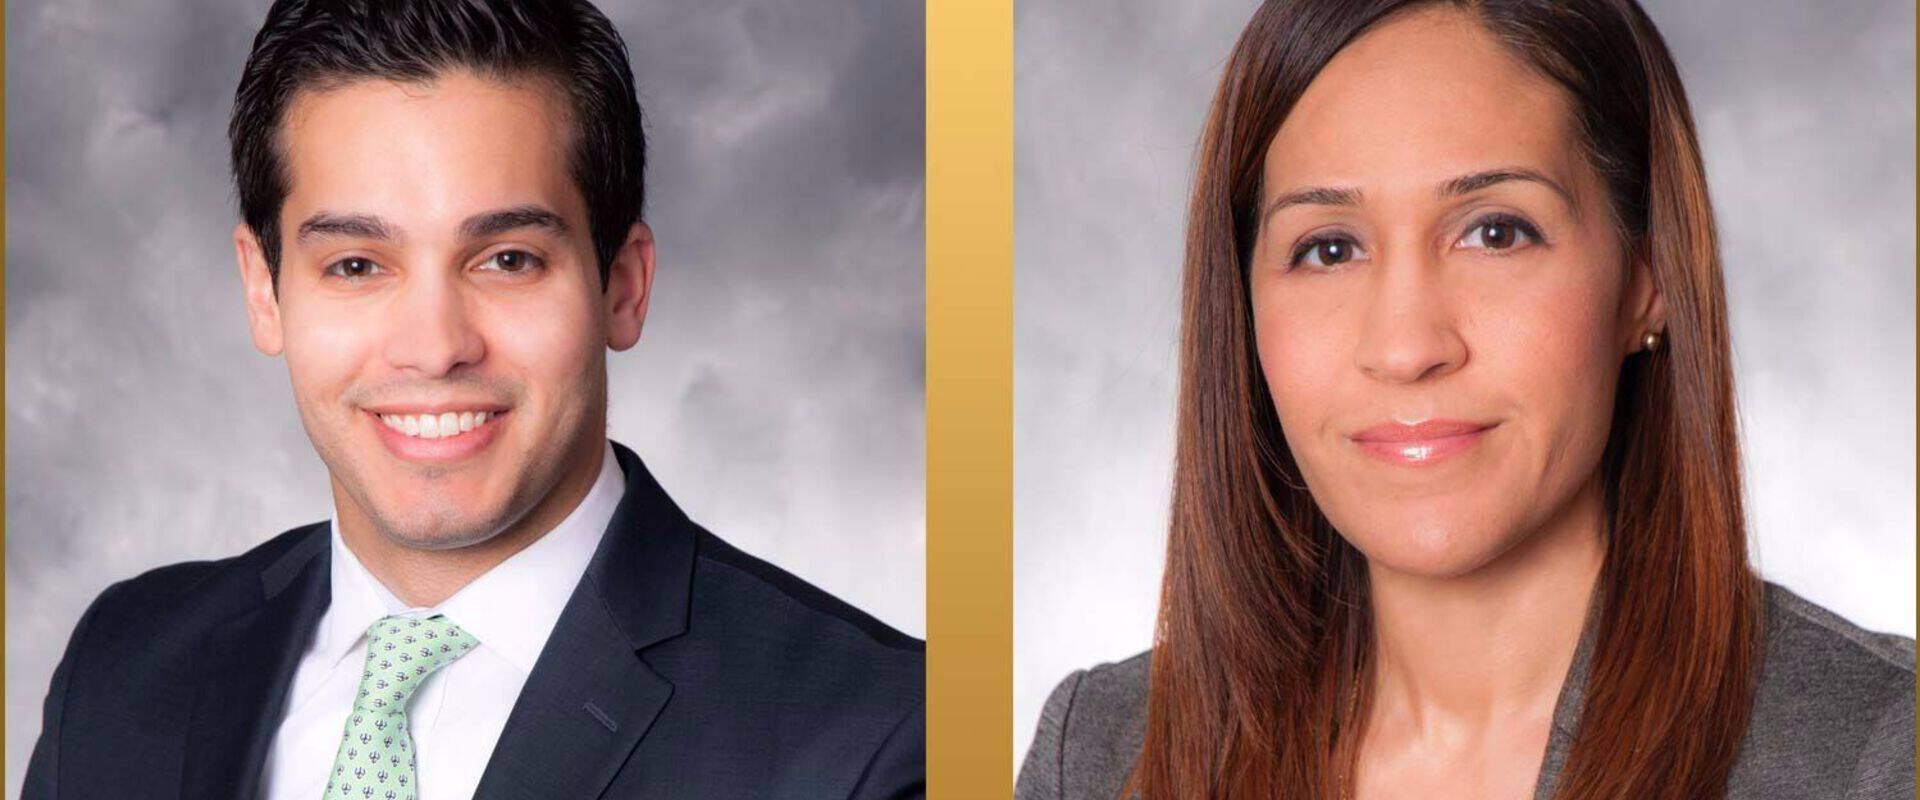 CMR Announces Two New Attorneys as Associates